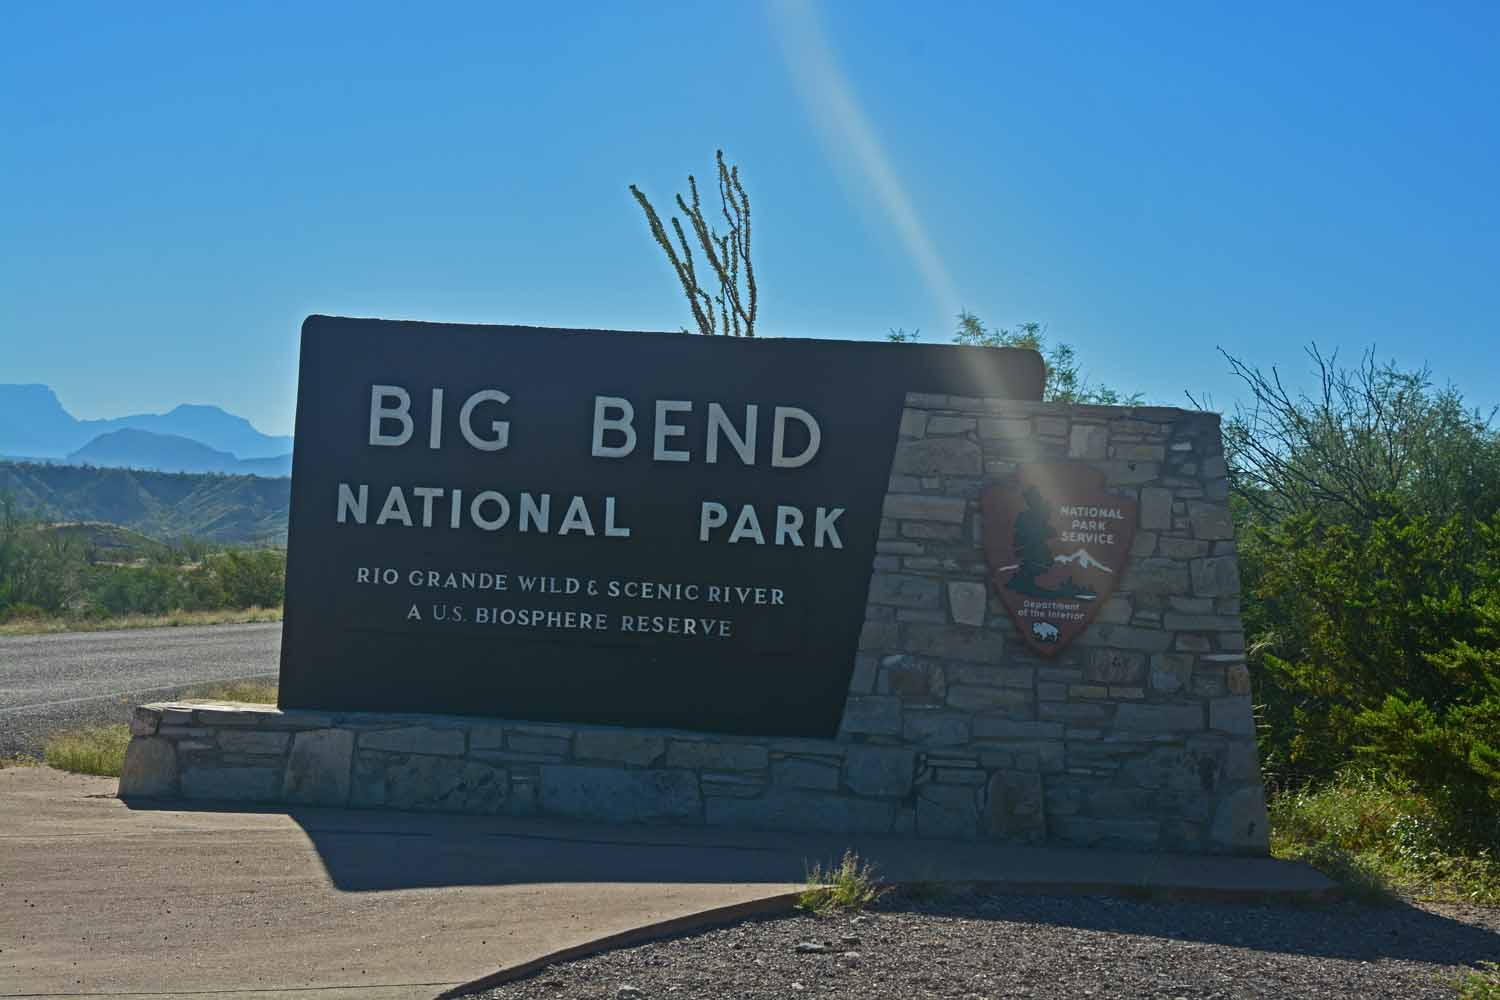 Moving south...Big Bend is an adventure in the desert, the mountains and the Rio Grande River for the hiker and photographer